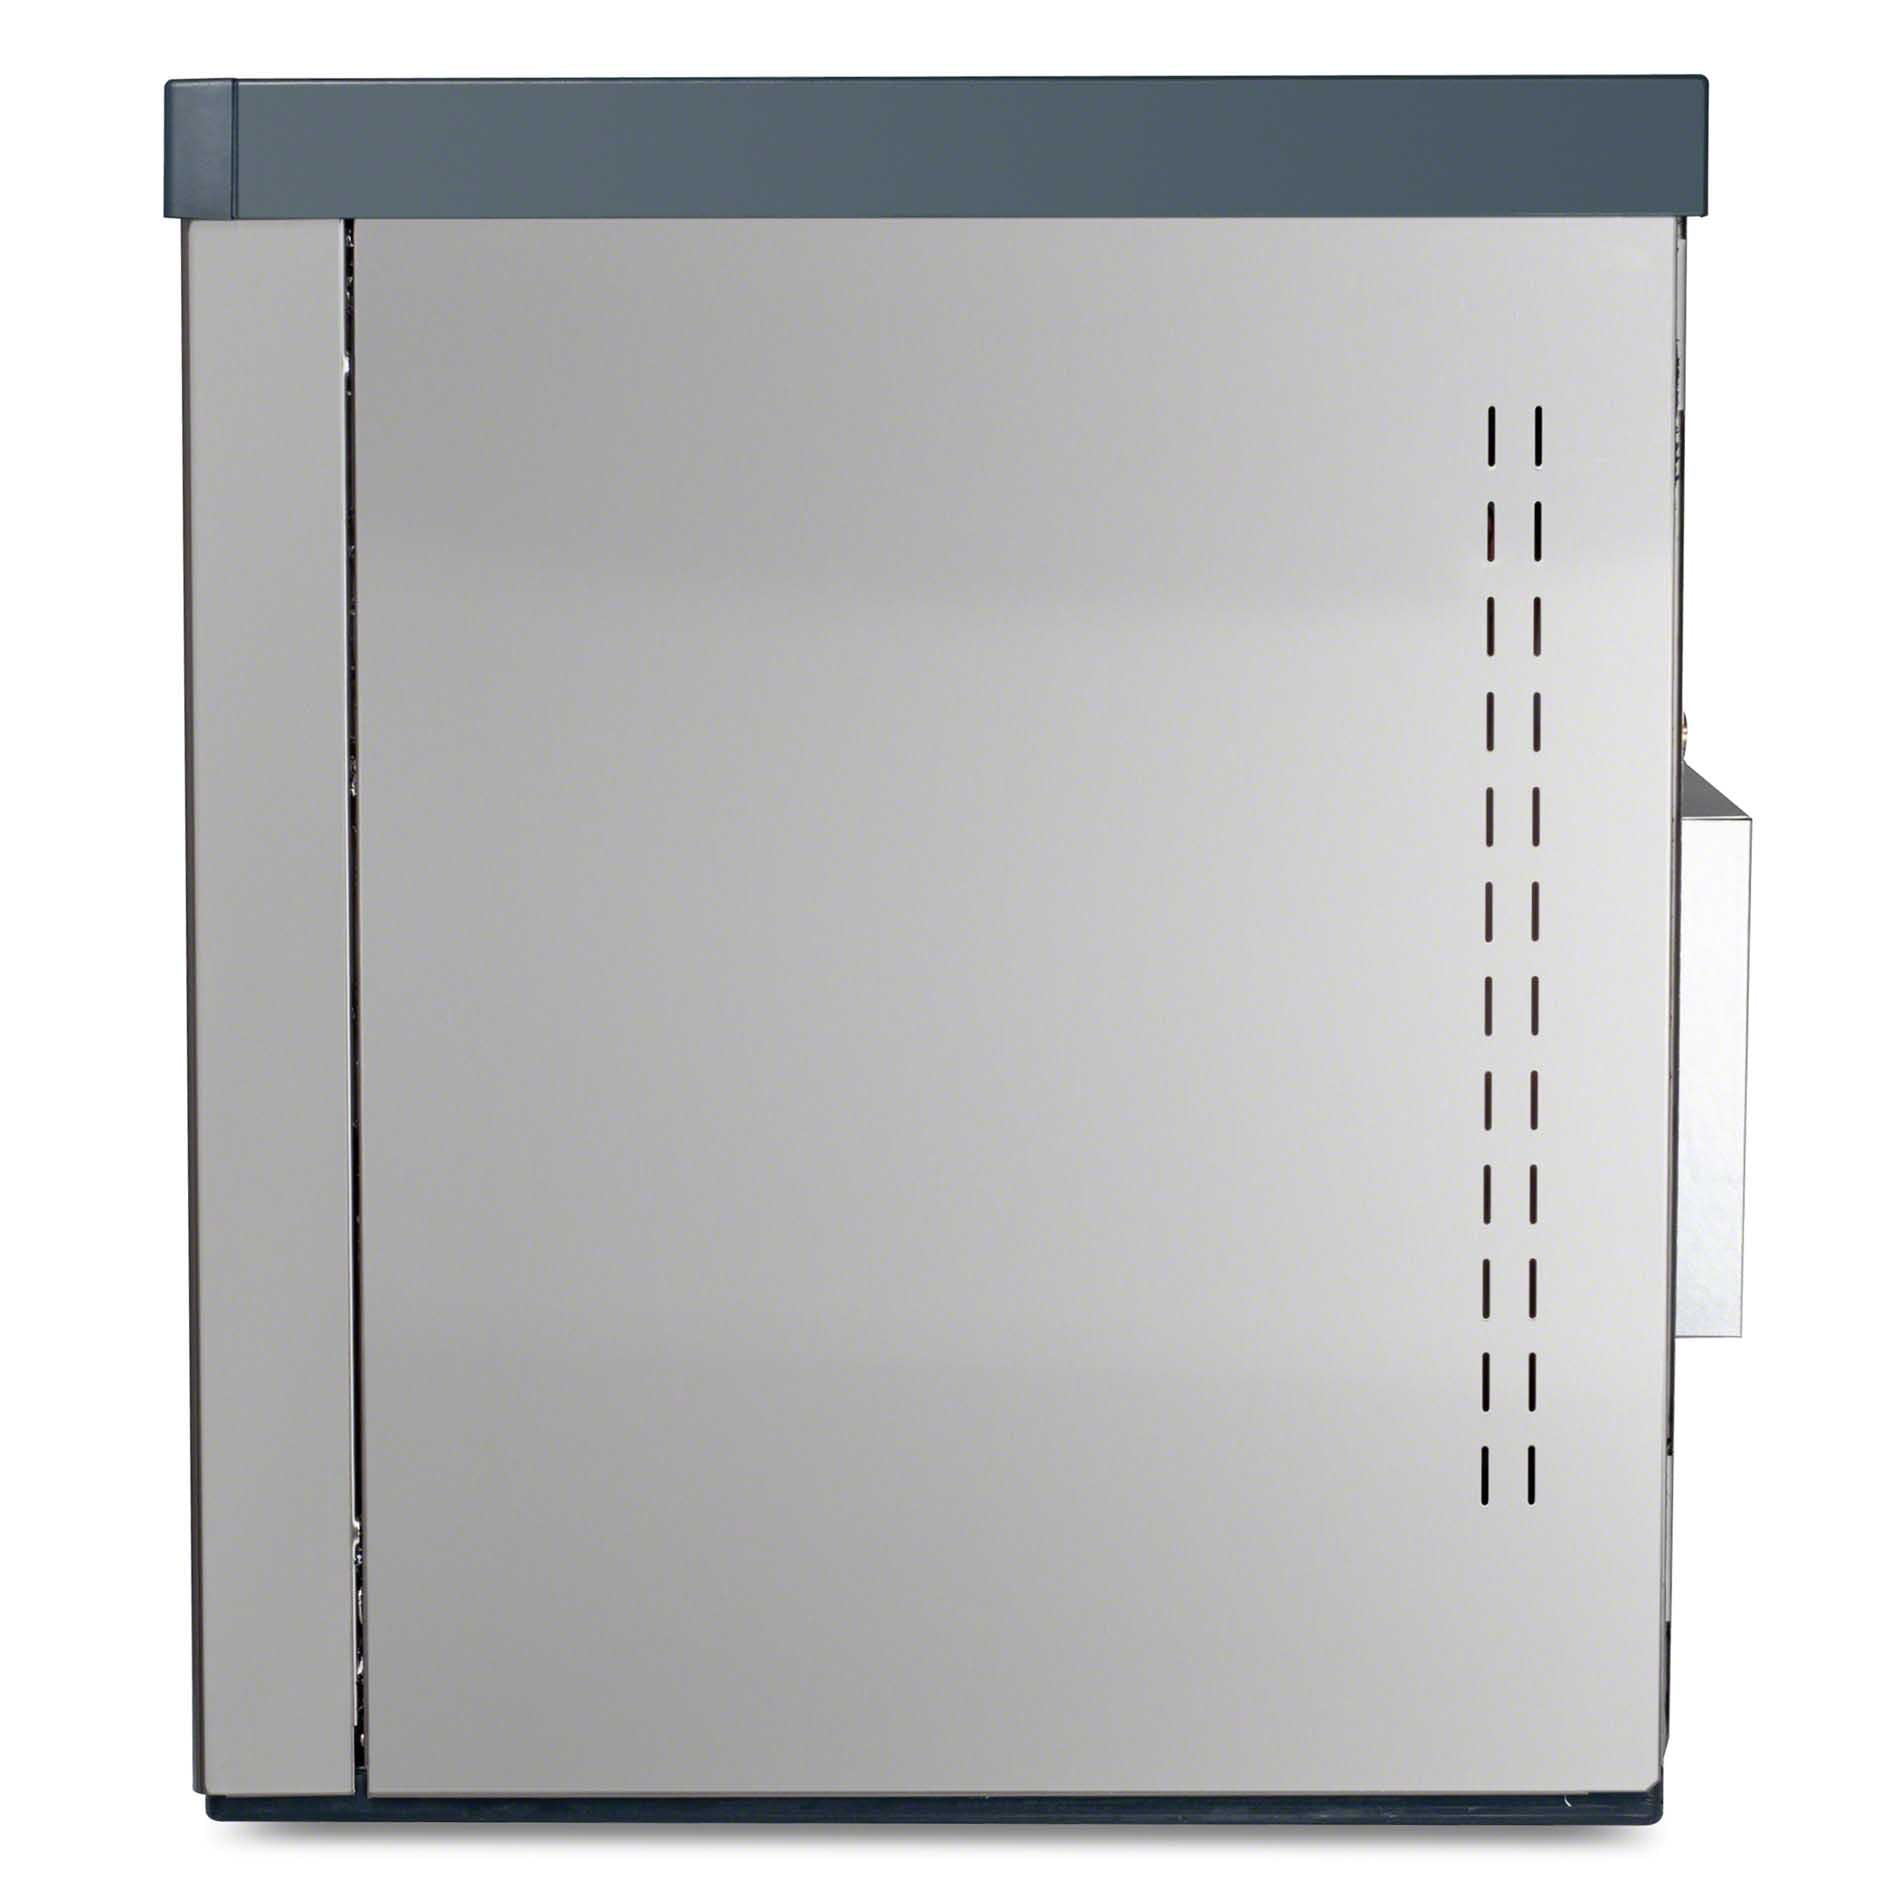 Scotsman - C1448SW-32A 1444 lb Half Size Cube Ice Machine - Prodigy Series Ice machine sold by Food Service Warehouse